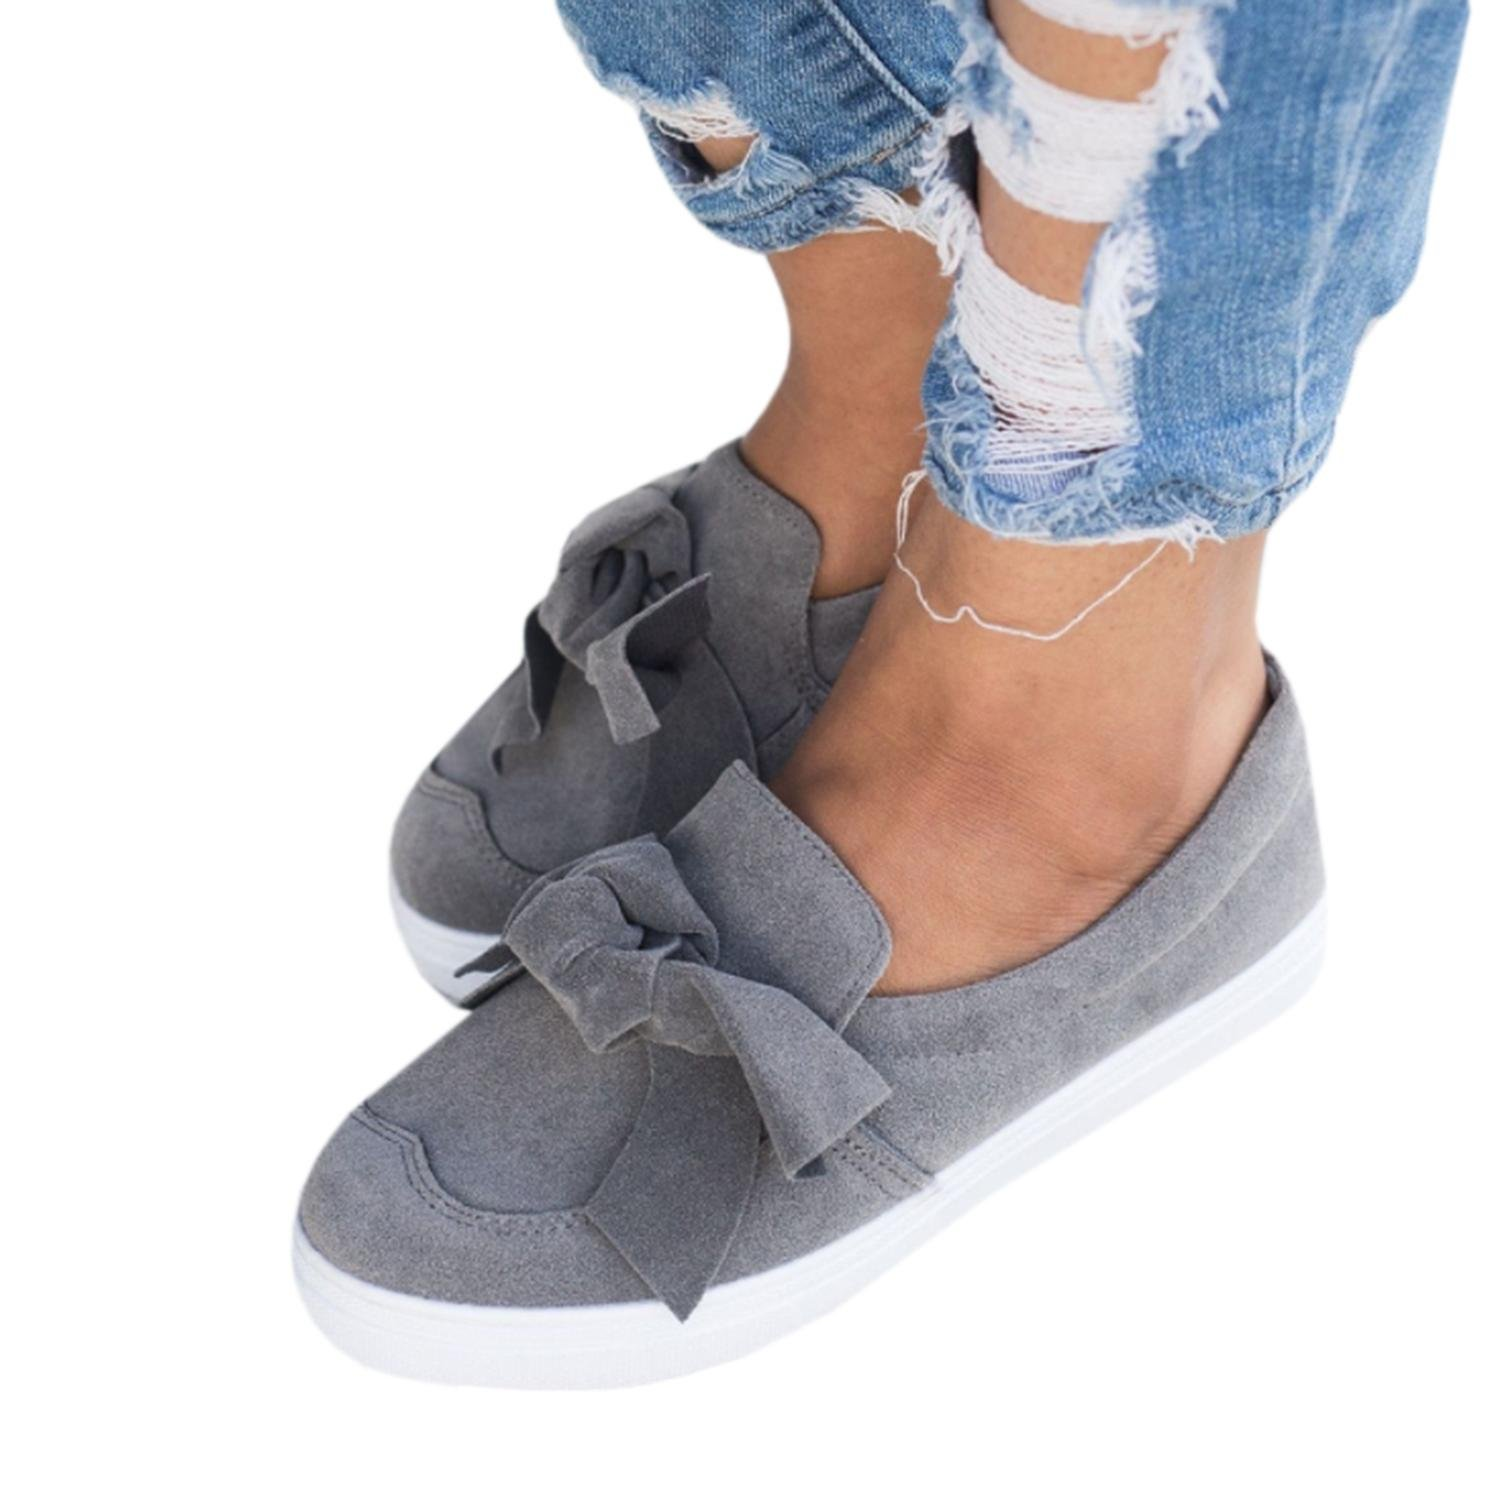 Imysty Womens Slip-on Loafers Fashion Top Bowknot Casual Walking Faux Suede Flat Sneakers Shoes